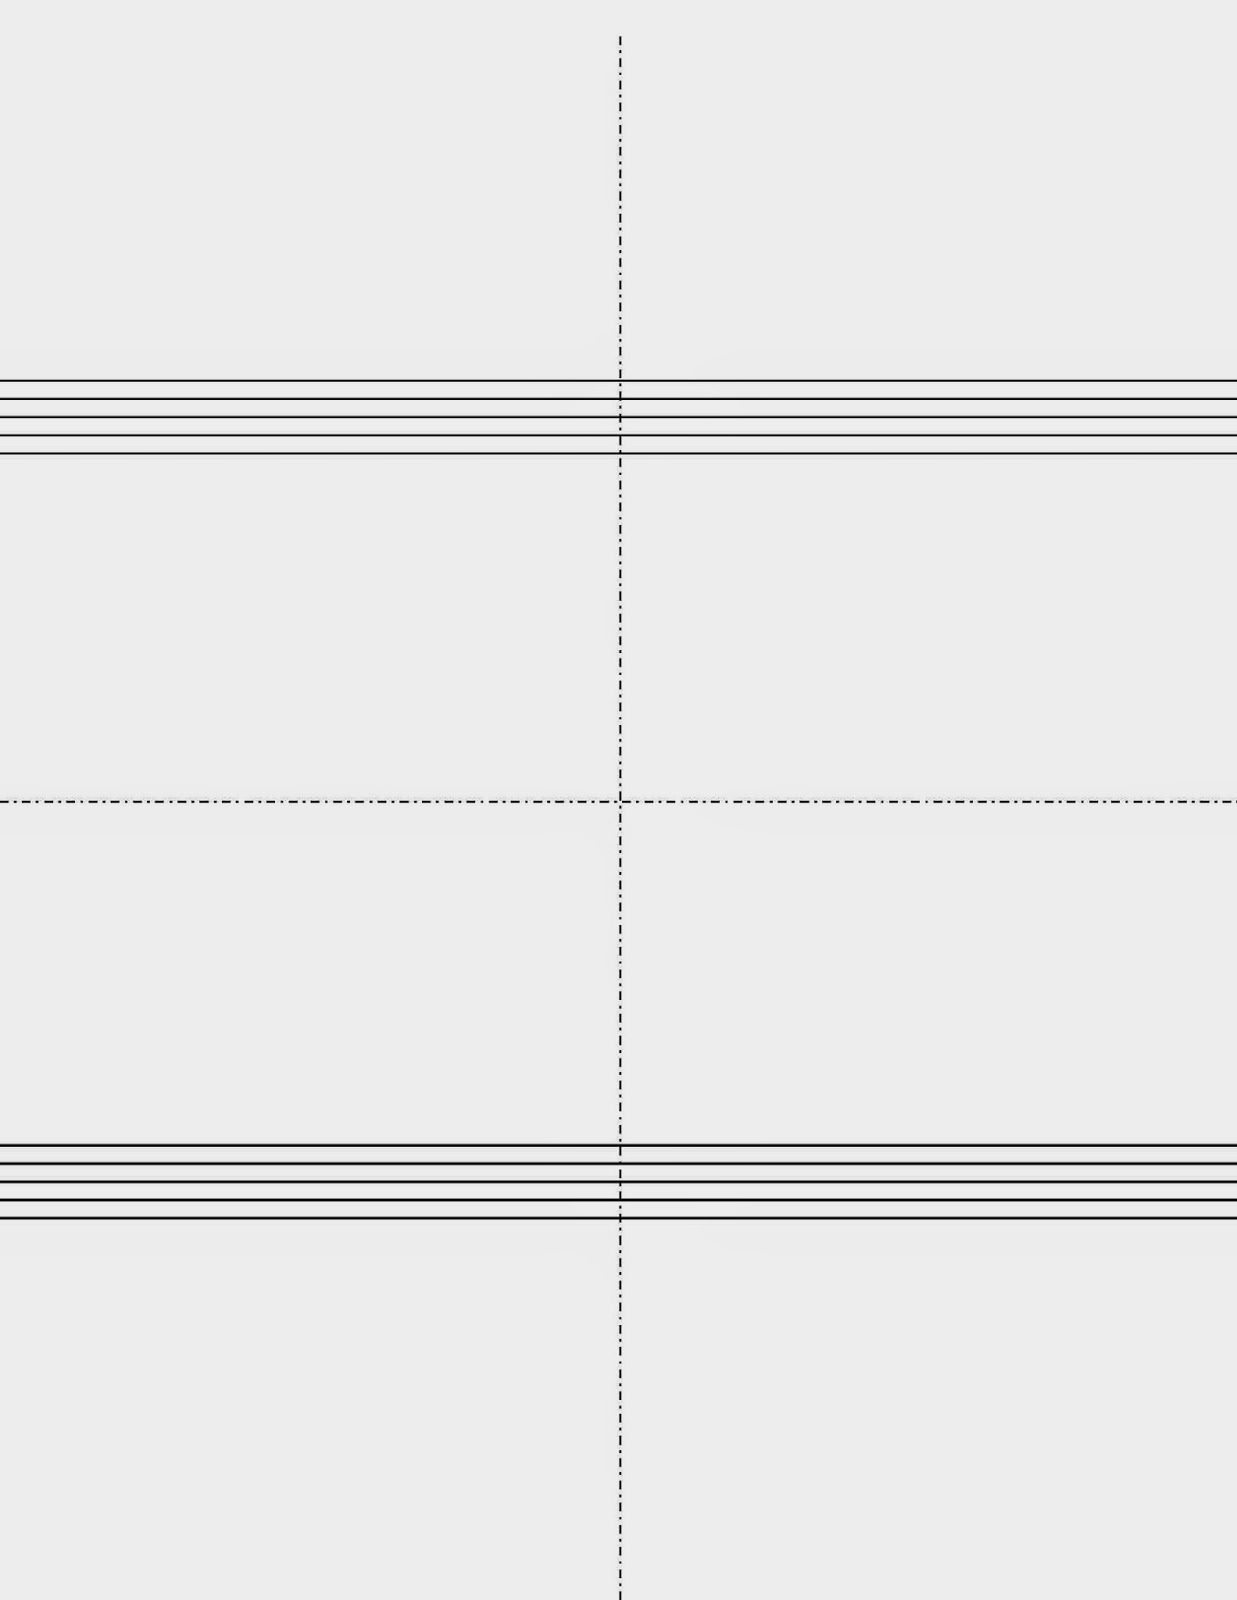 Flashcard Template For Music Class Students Can Make Their Own Flashcards Teaching Orchestra Orchestra Classroom Flashcards